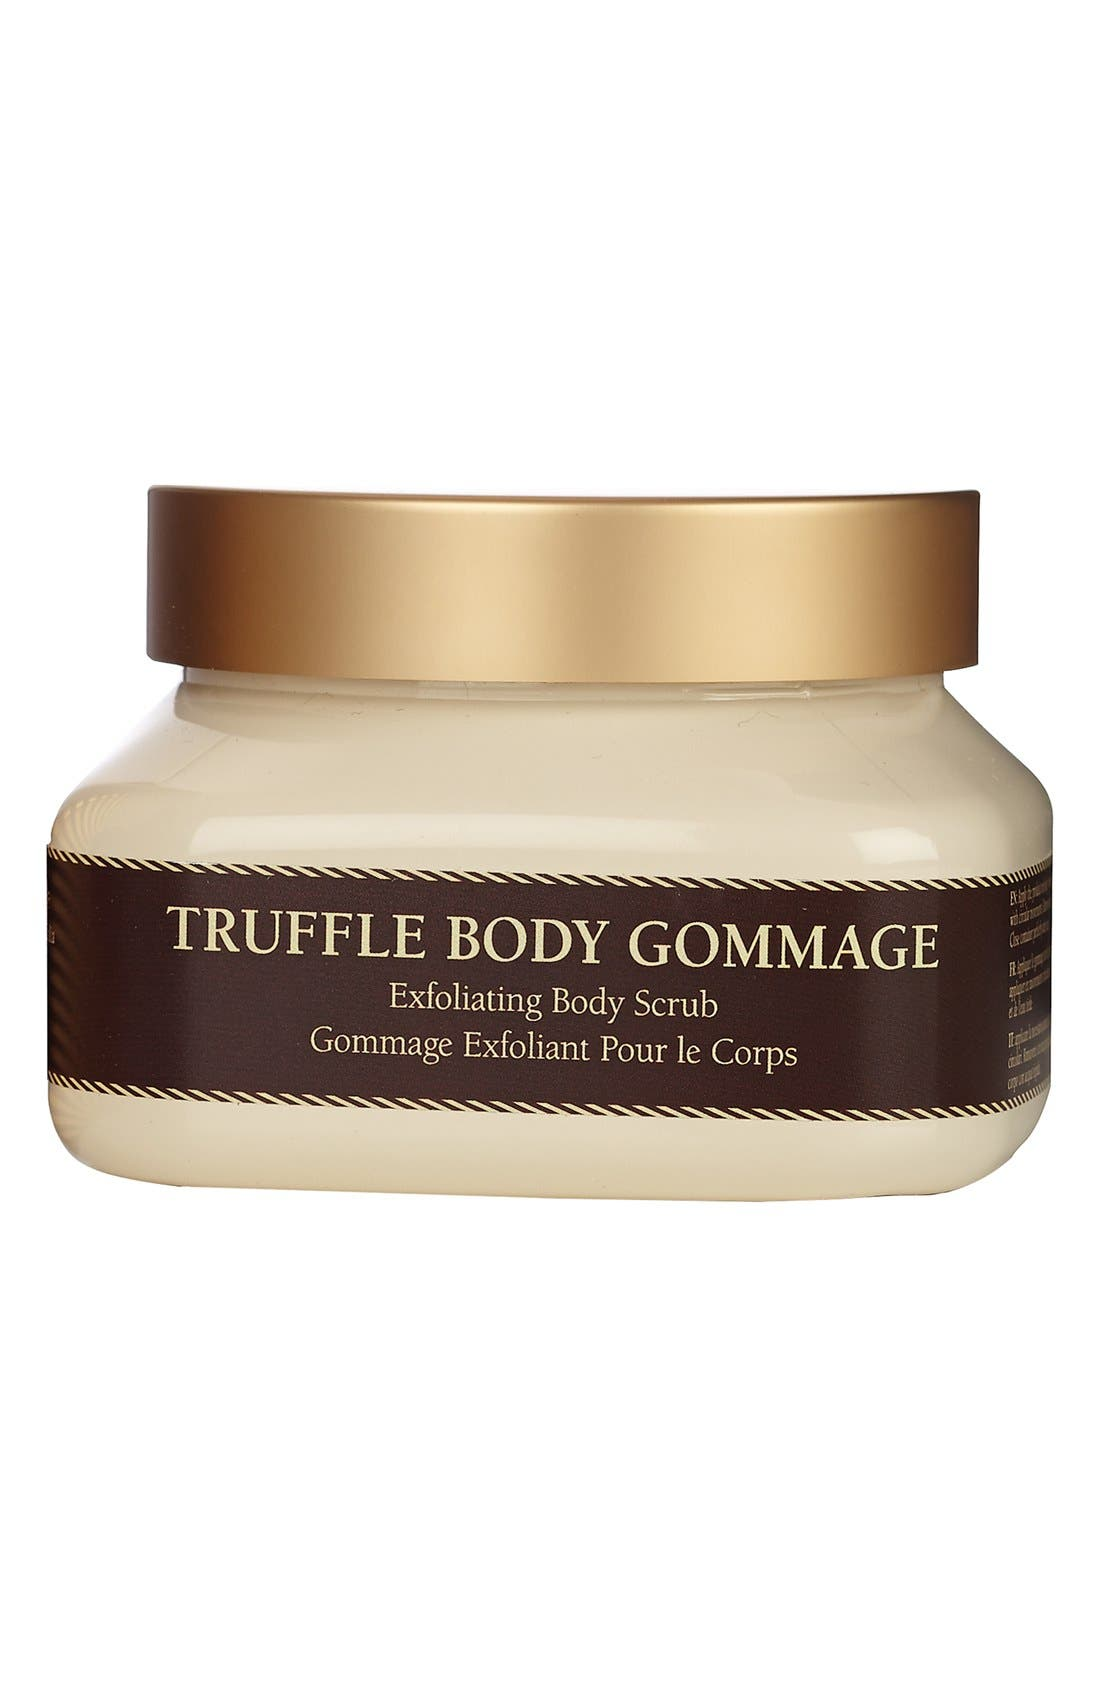 SKIN&CO Truffle Body Gommage,                         Main,                         color, 000